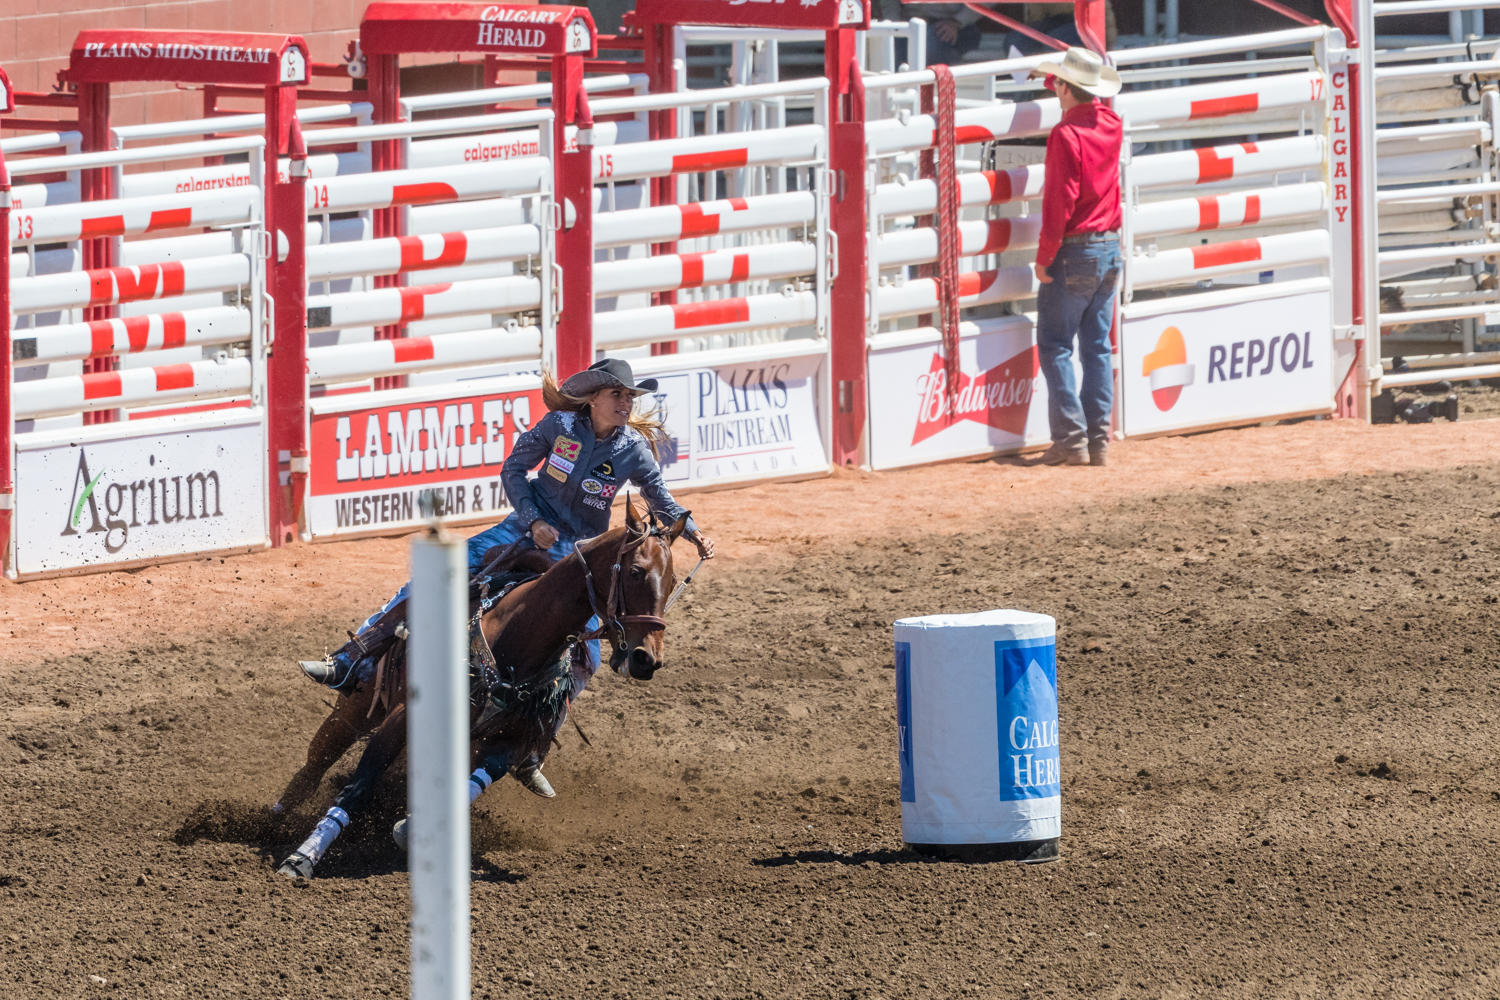 Barrel racing seemed more straight forward than the other events. There were 3 barrels in the arena. The cowgirl had to run around the middle two barrels (in any order), then the far barrel before a mad dash to across the arena to where she started.